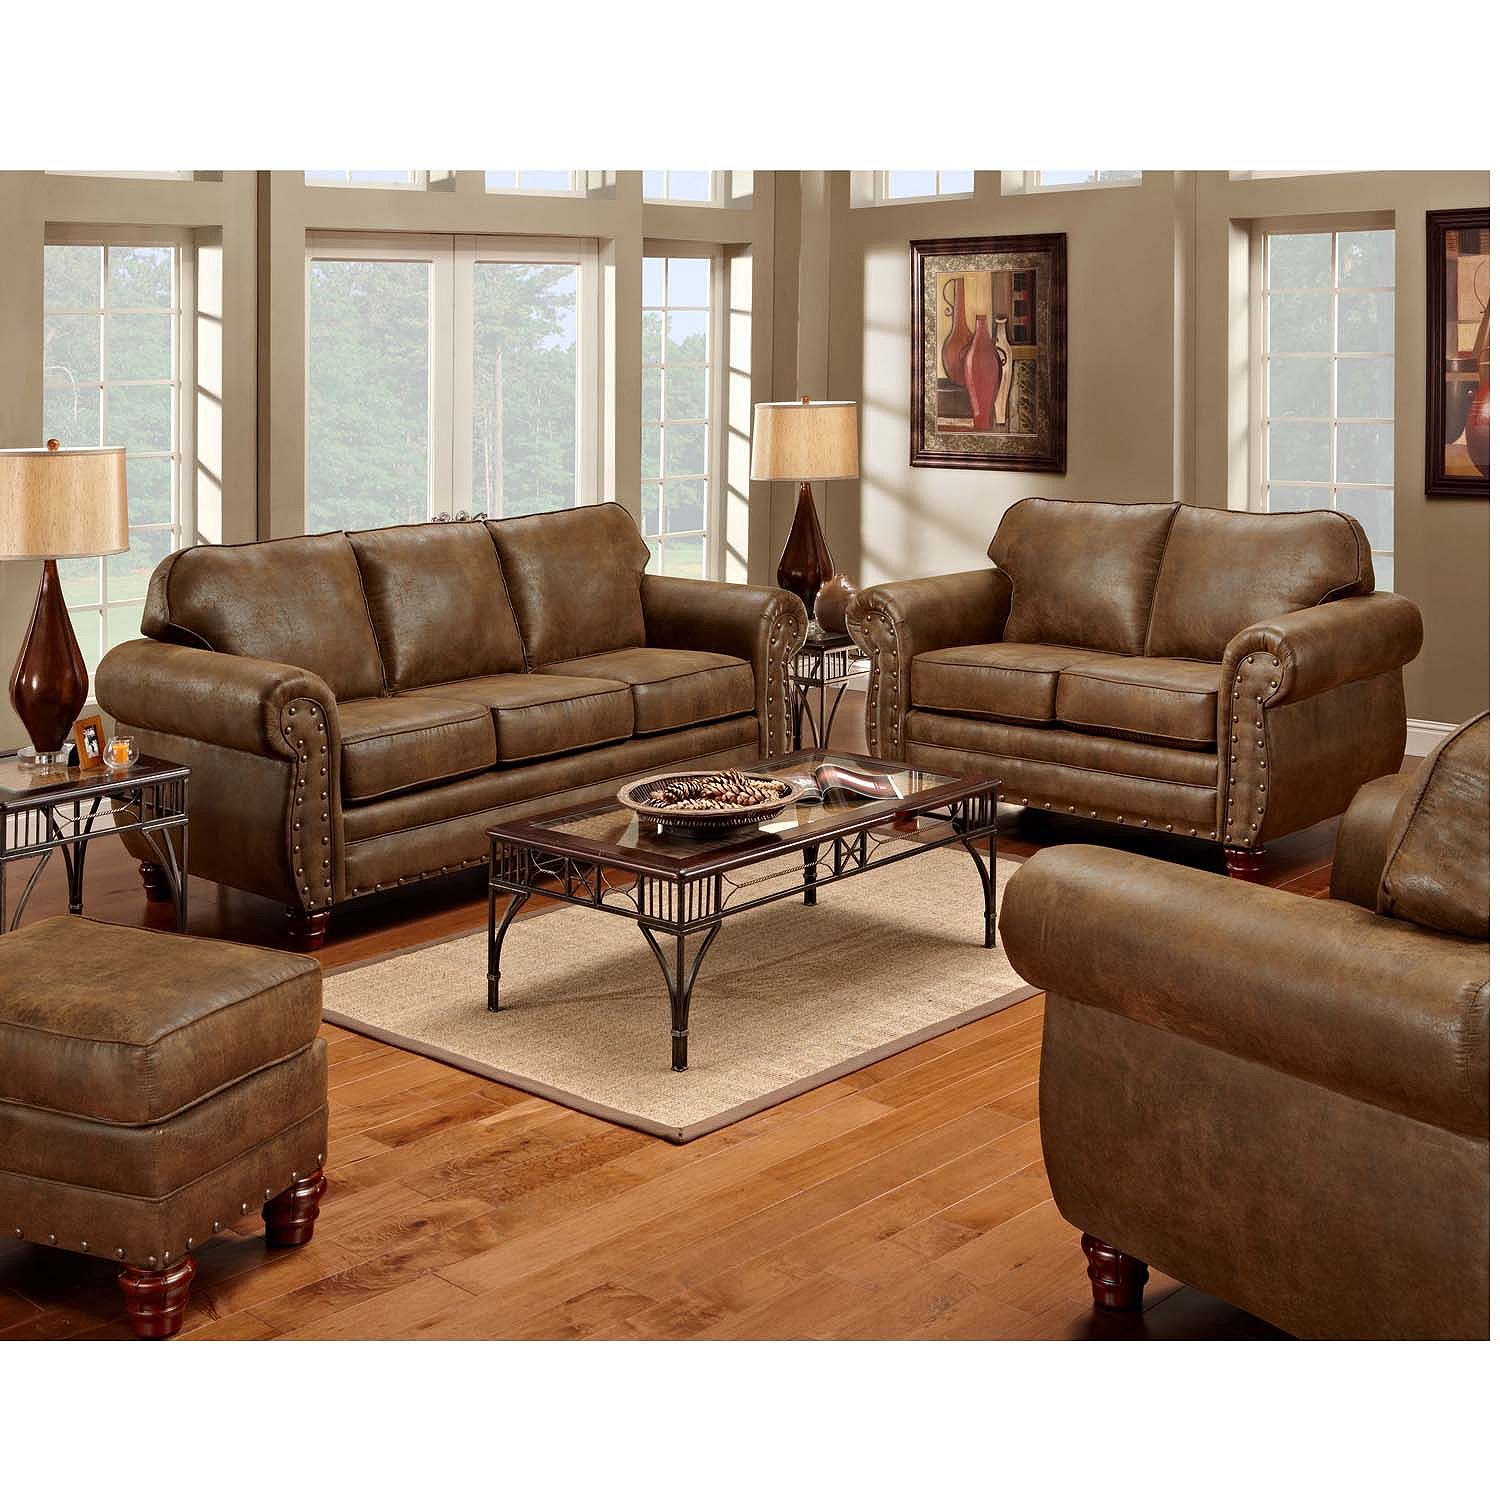 living room leather chair top 4 comfortable chairs for living room homesfeed 15665